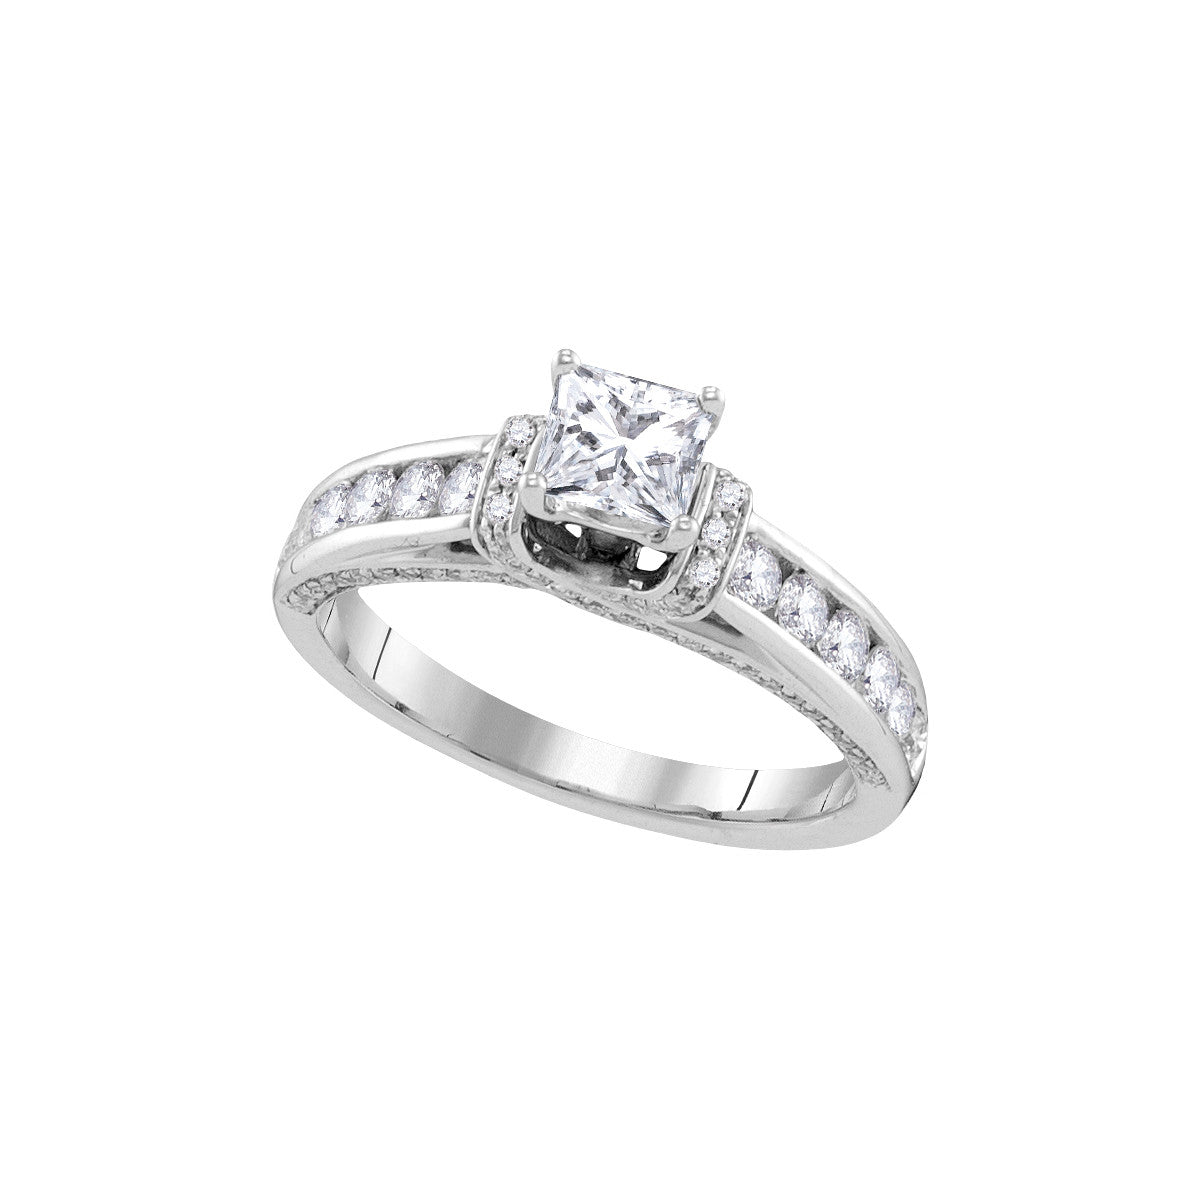 14kt White Gold Womens Princess Diamond Solitaire Bridal Wedding Engagement Ring 1-1/4 Cttw 107350 - shirin-diamonds